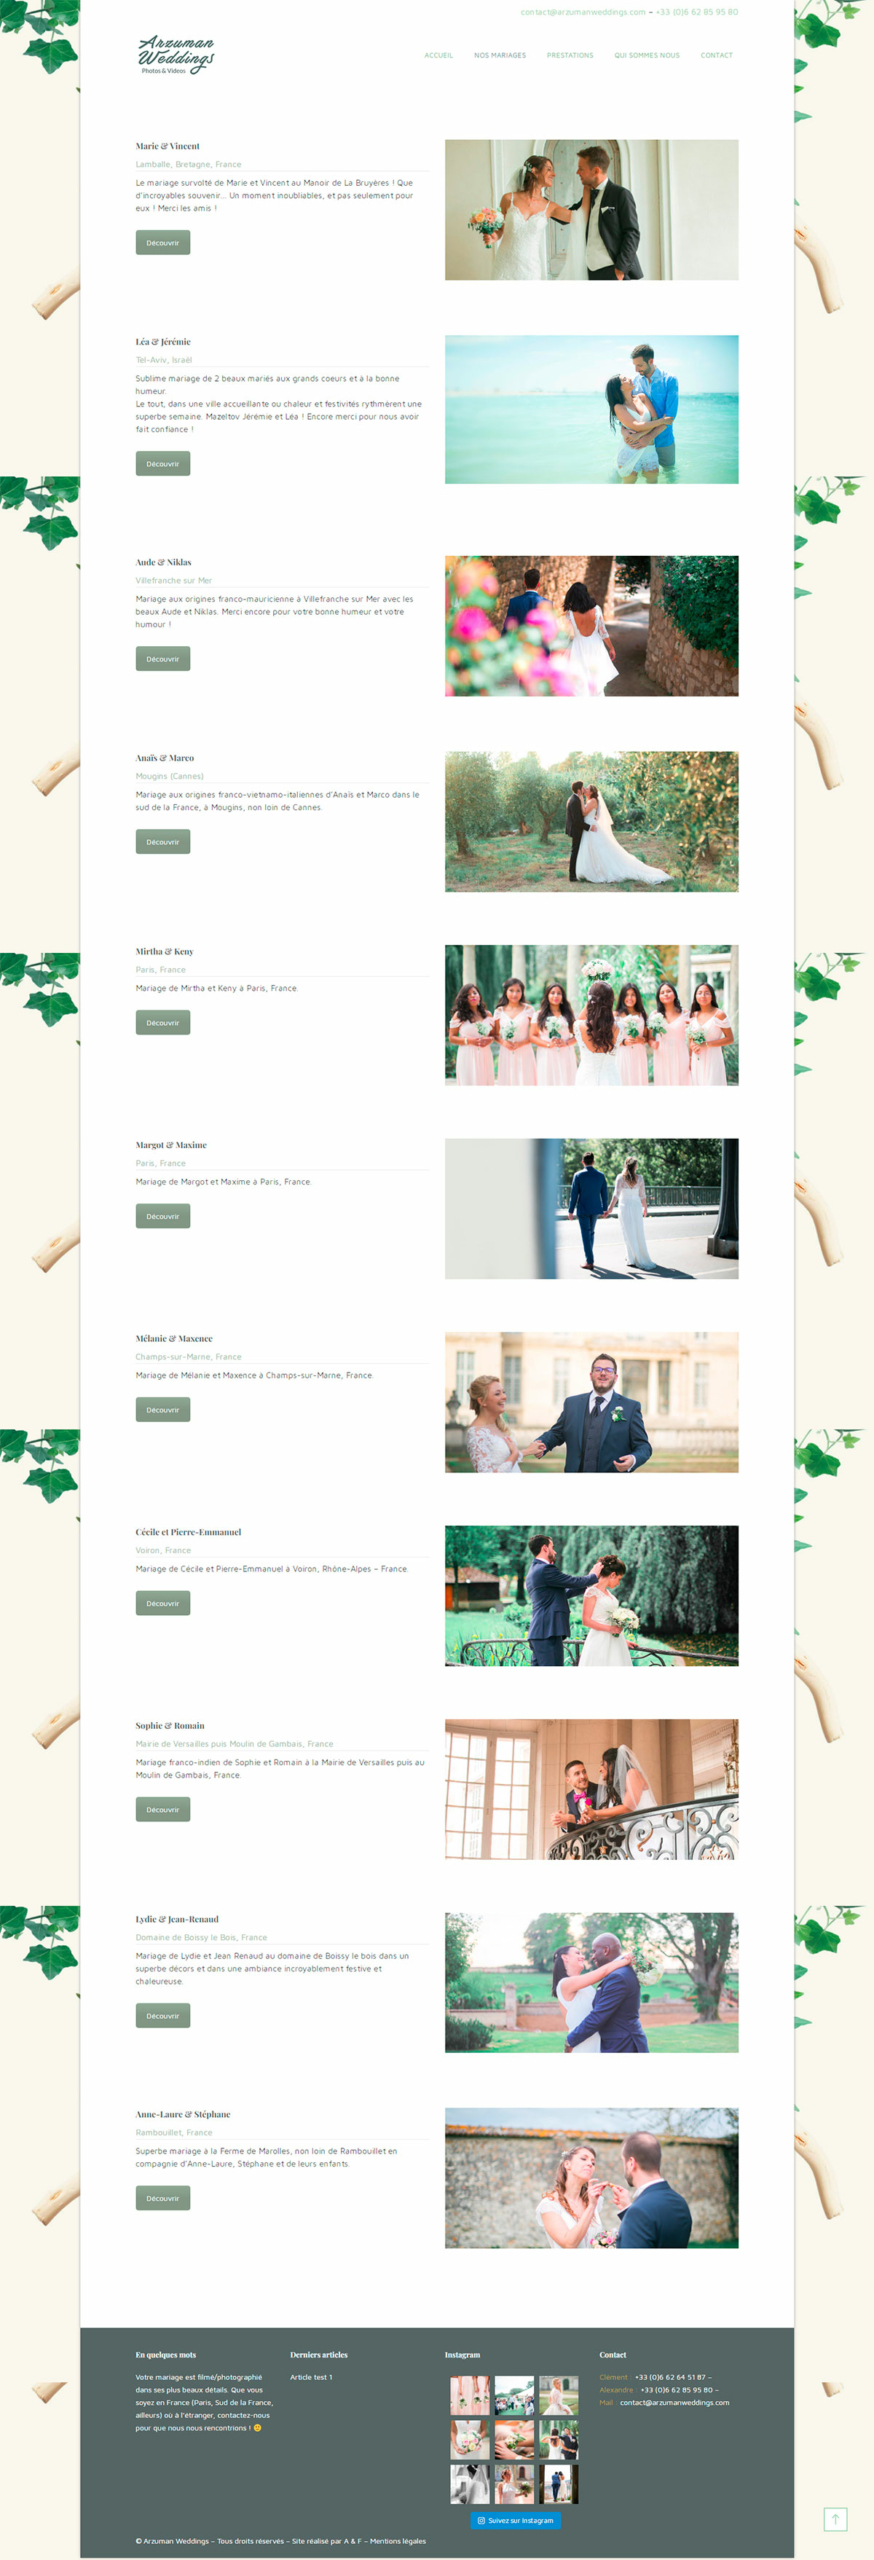 Refonte site web Arzuman Weddings - Laurent Forbault - Webmaster Freelance Paris